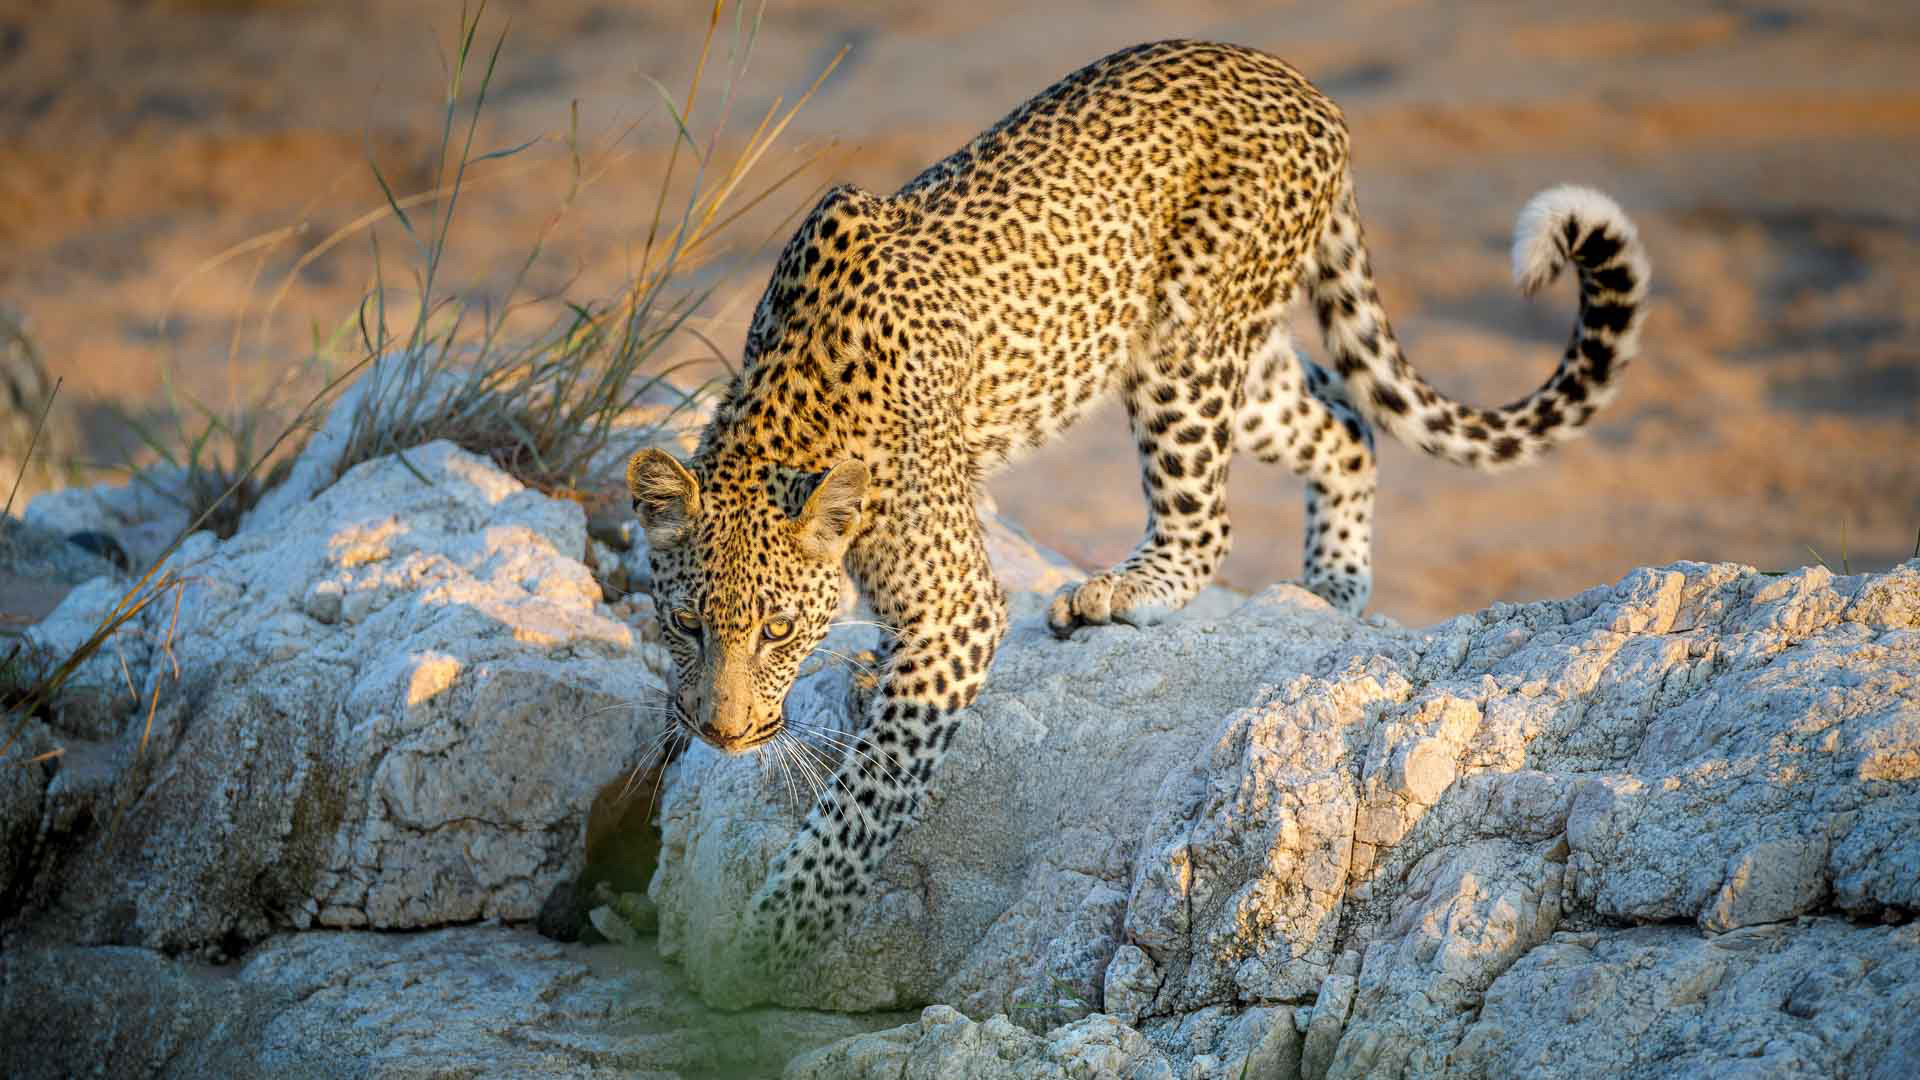 Tanda Tula - leopard spotted in the Greater Kruger